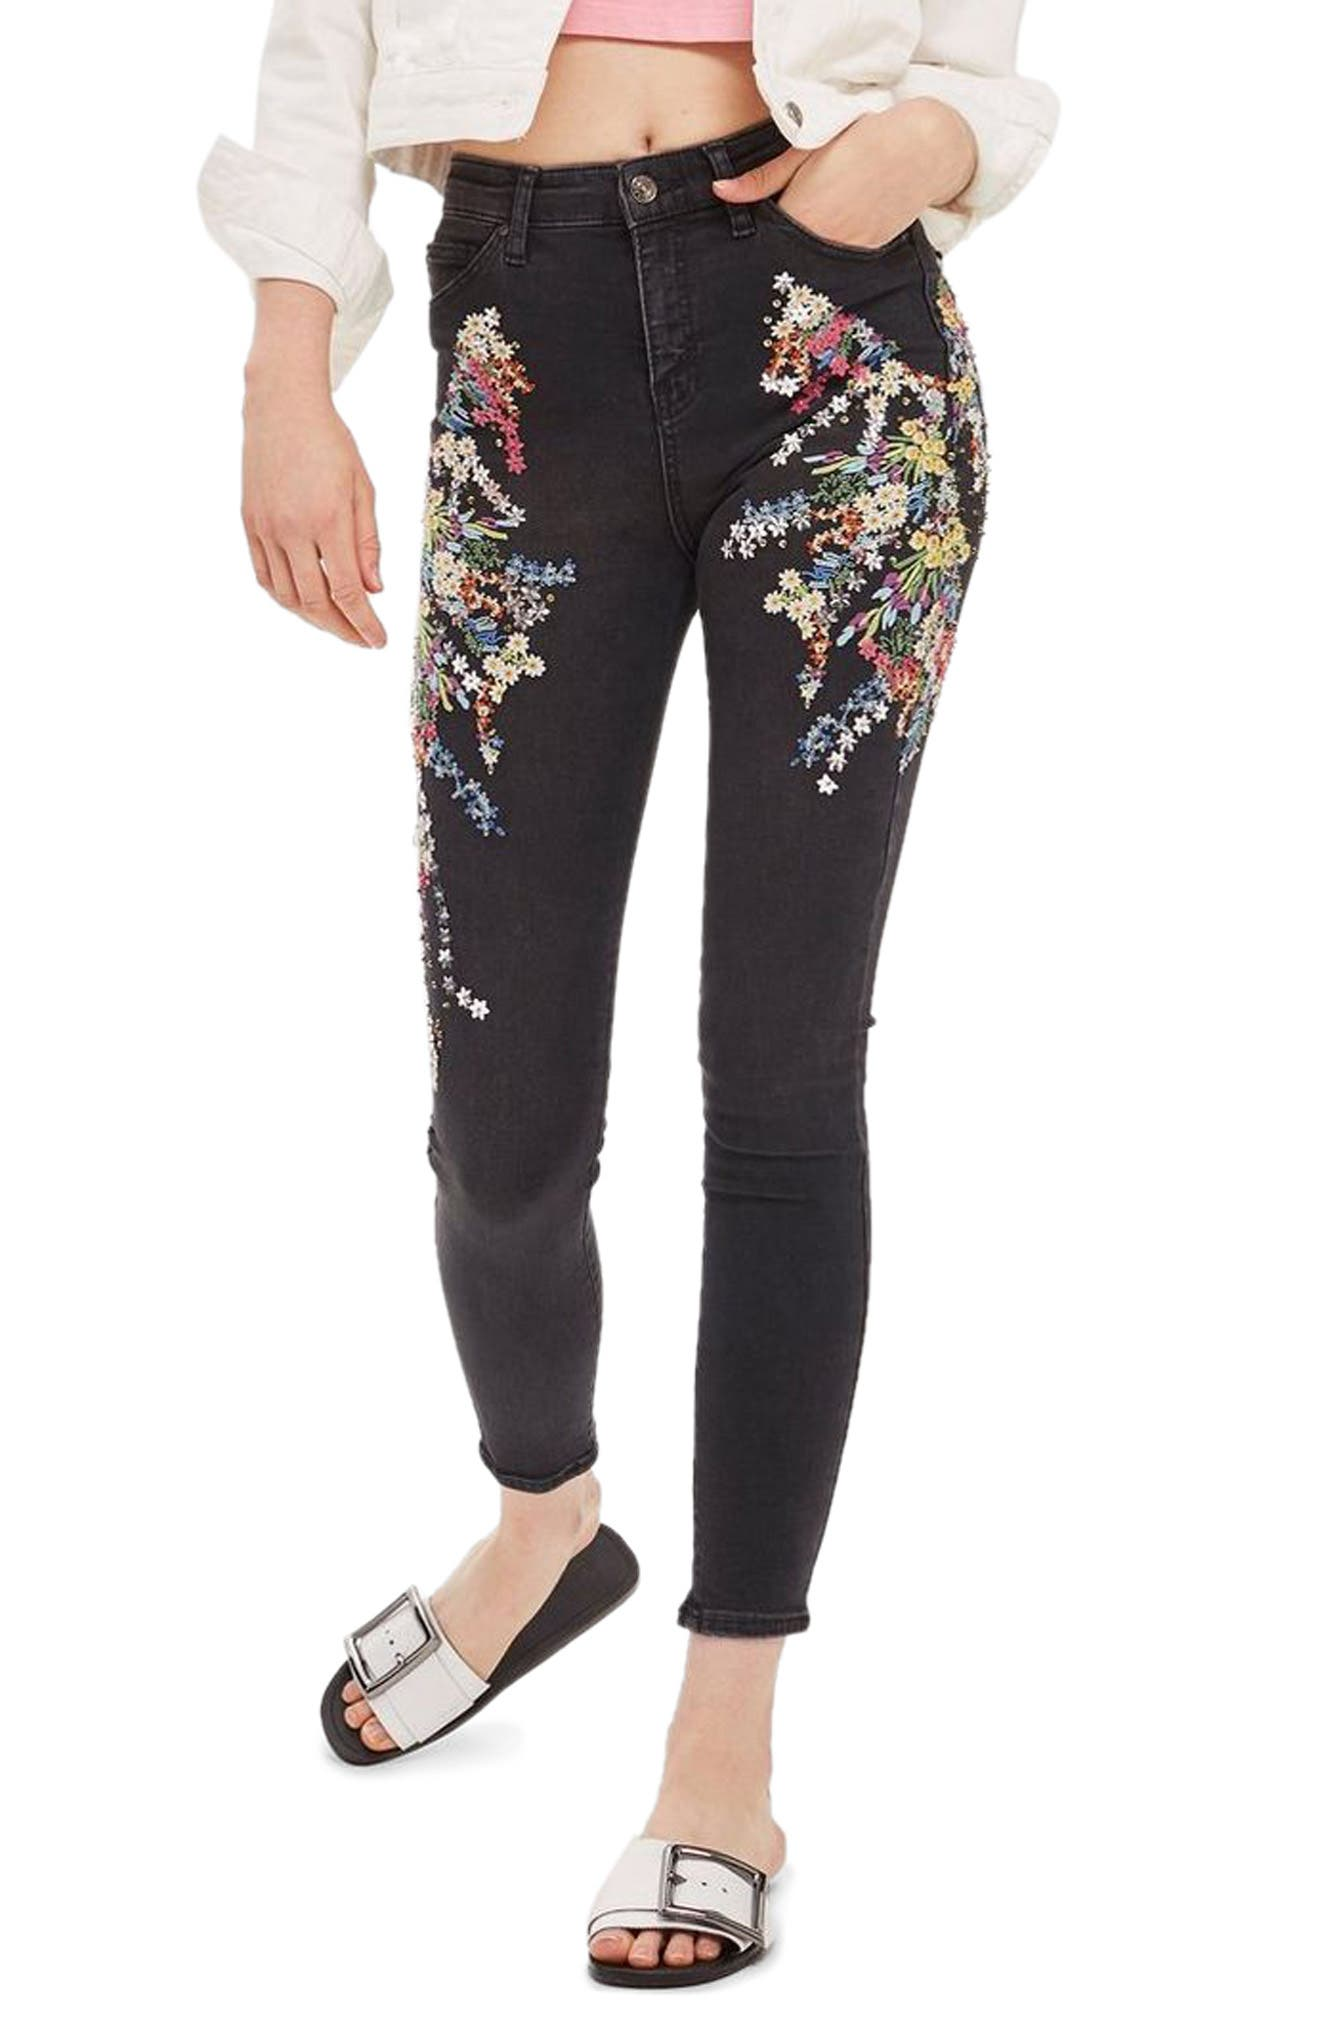 MOTO Jamie Ditzy Embellished Jeans,                             Main thumbnail 1, color,